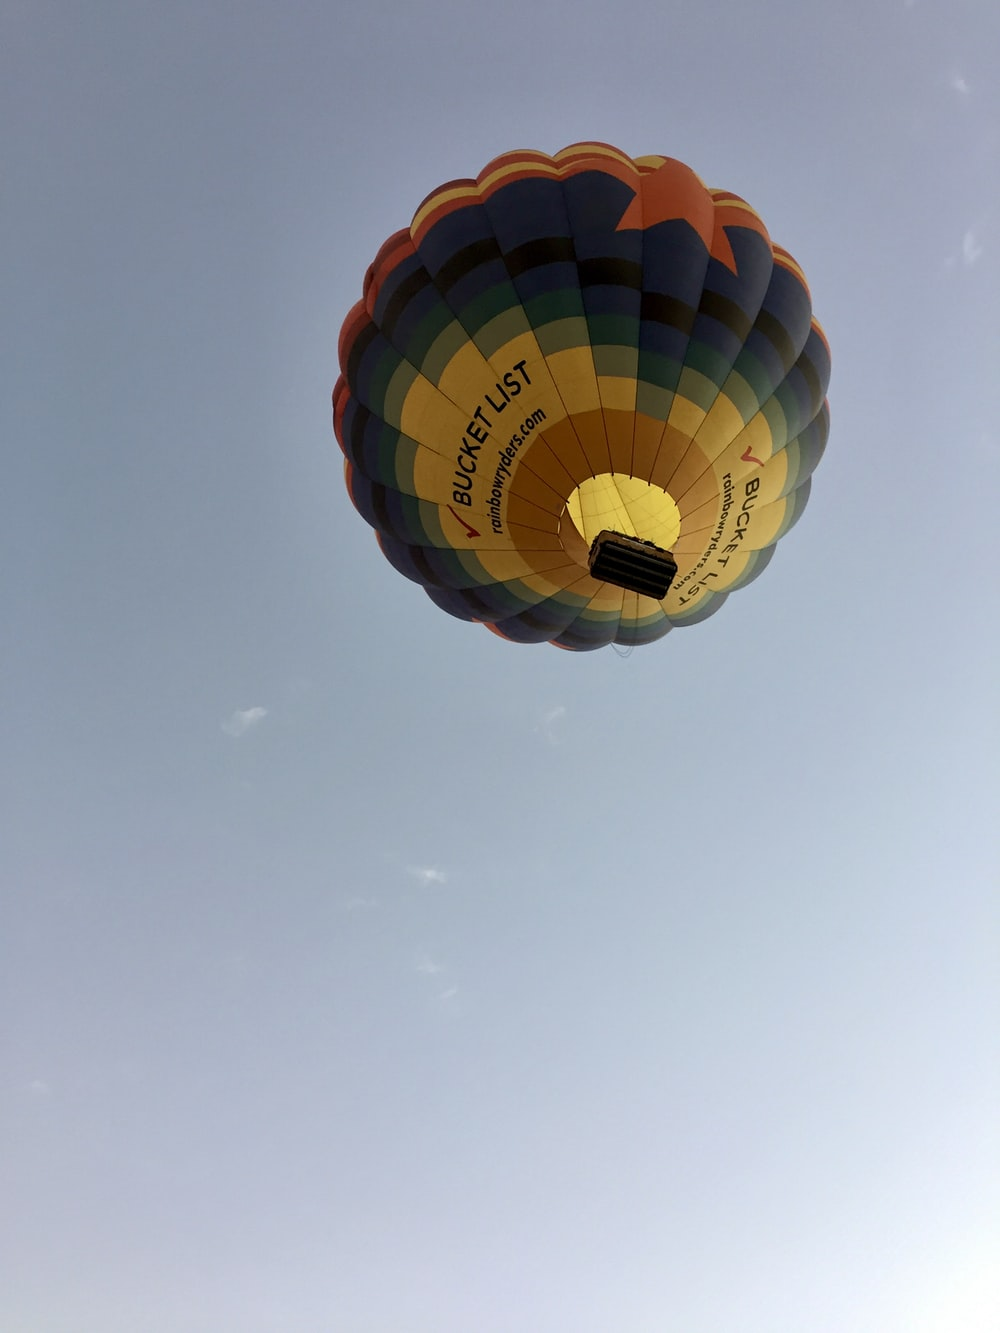 blue red and yellow hot air balloon in mid air